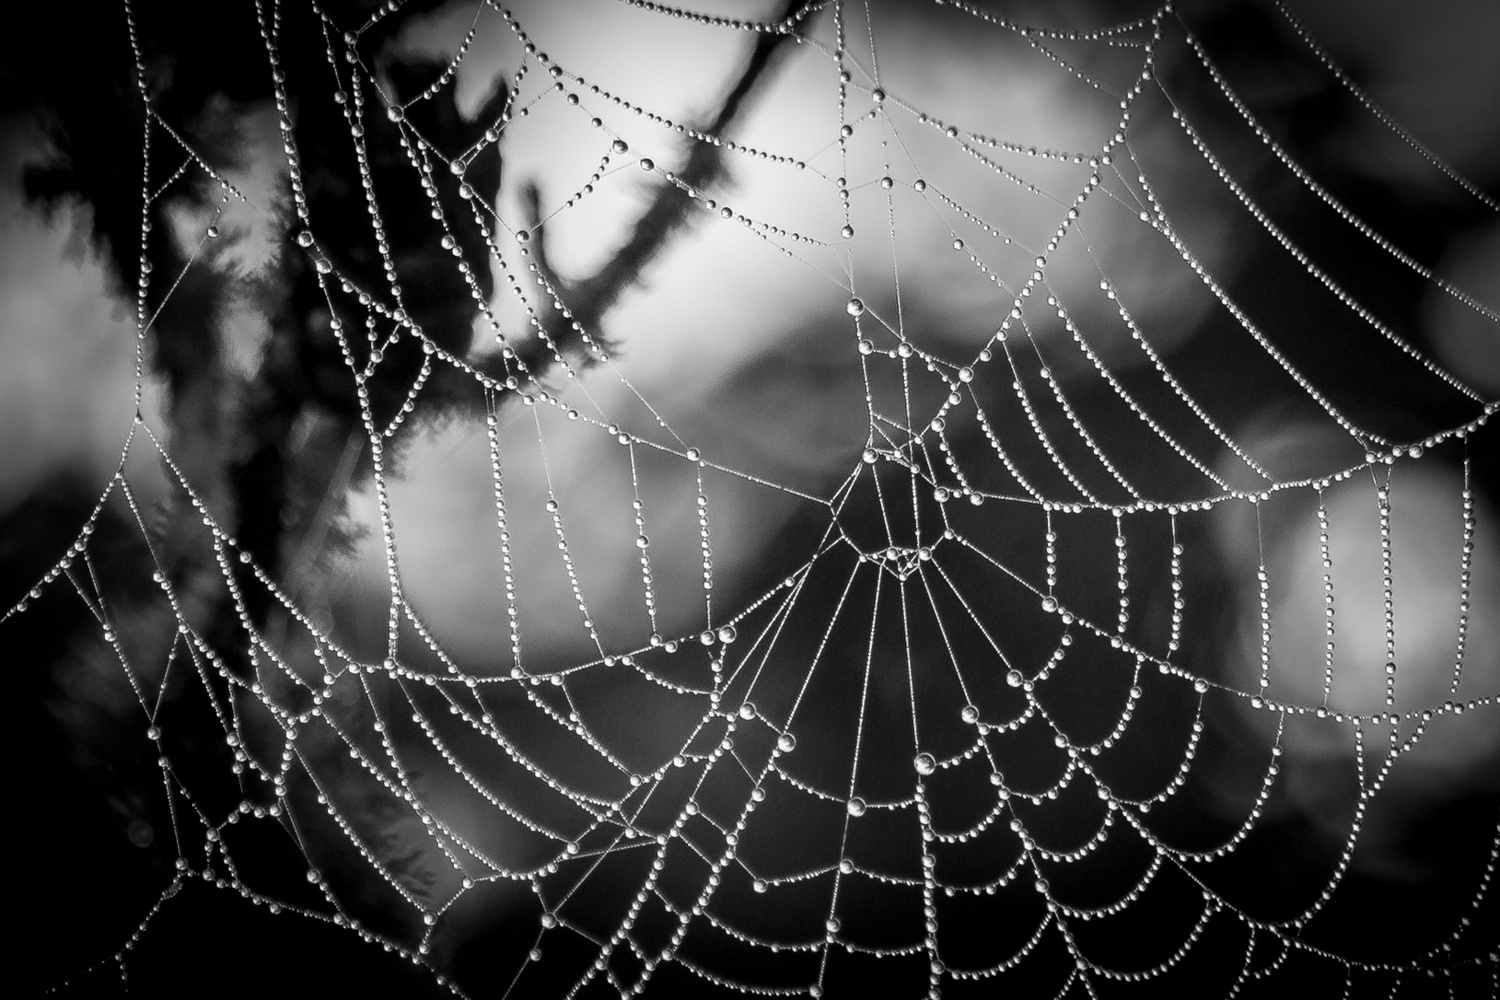 Spider Dew by Jerome Brill